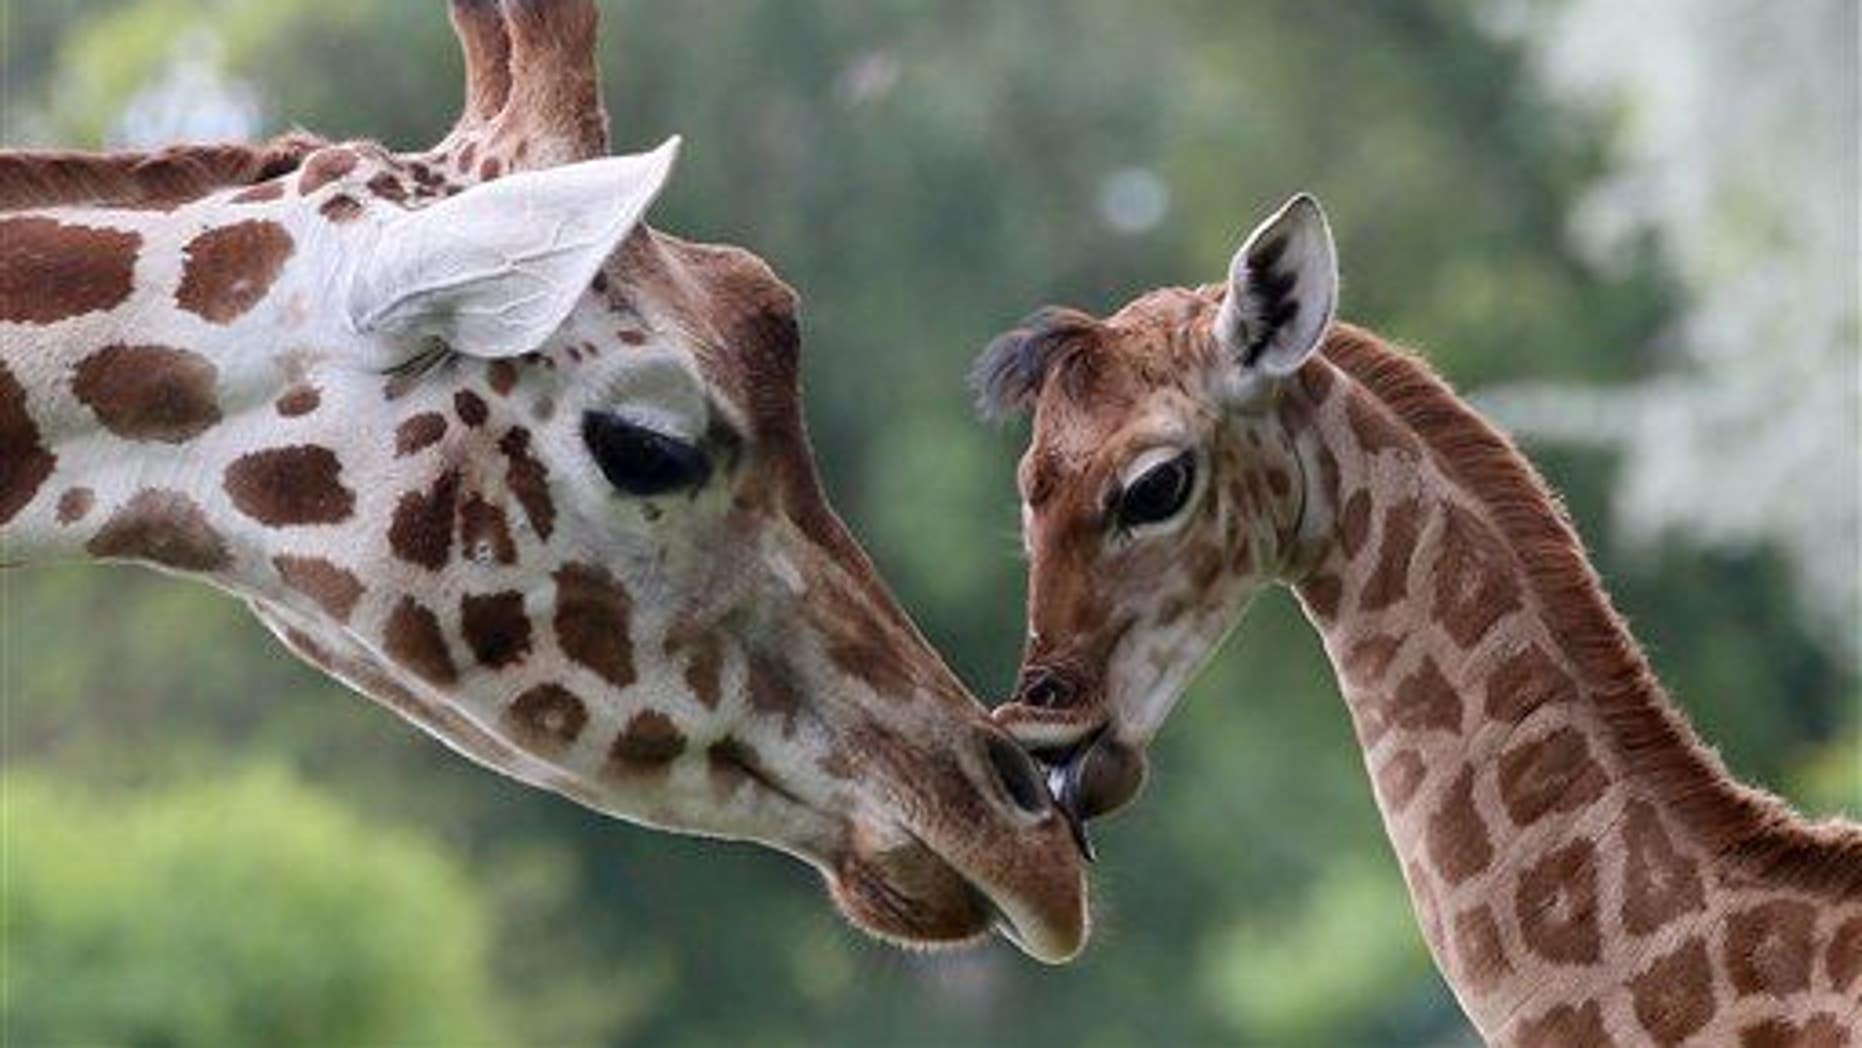 Nine-day-old giraffe Bine licks the nose of its giraffe aunt Andrea at Friedrichsfelde Zoo in Berlin, Germany, Friday, May 9, 2014.